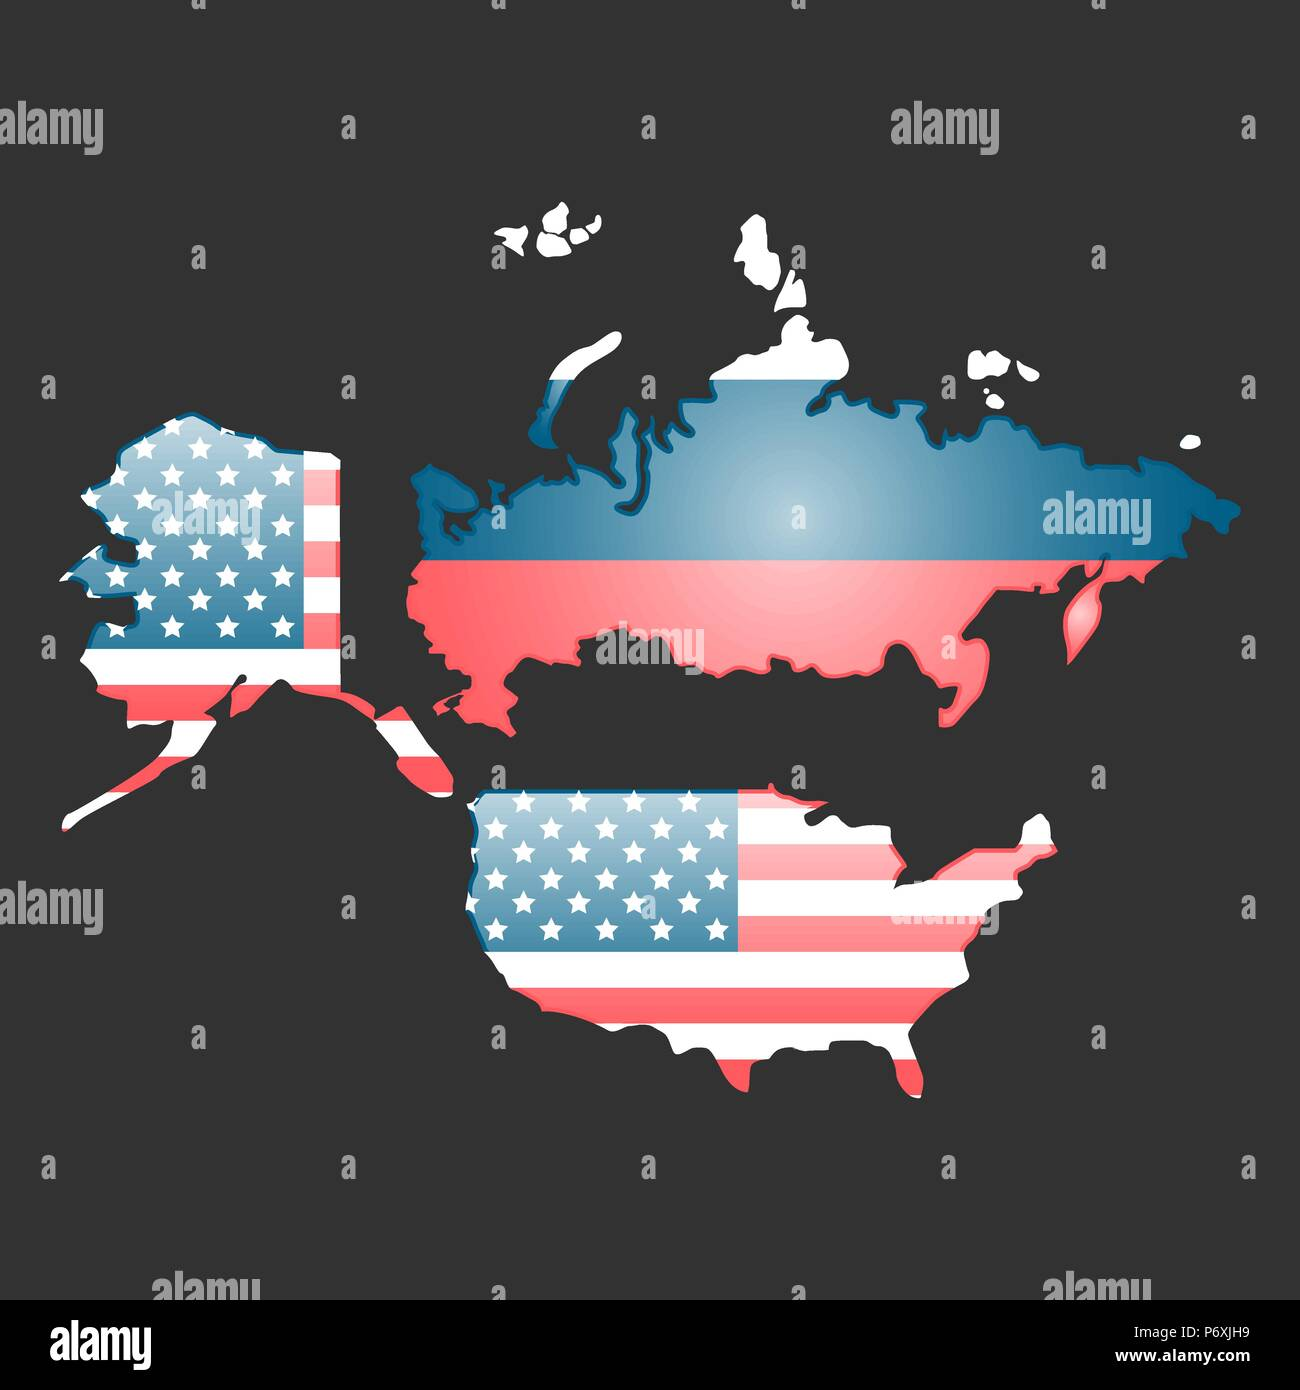 USA and Russia countries maps with their flags Stock Vector Art ...